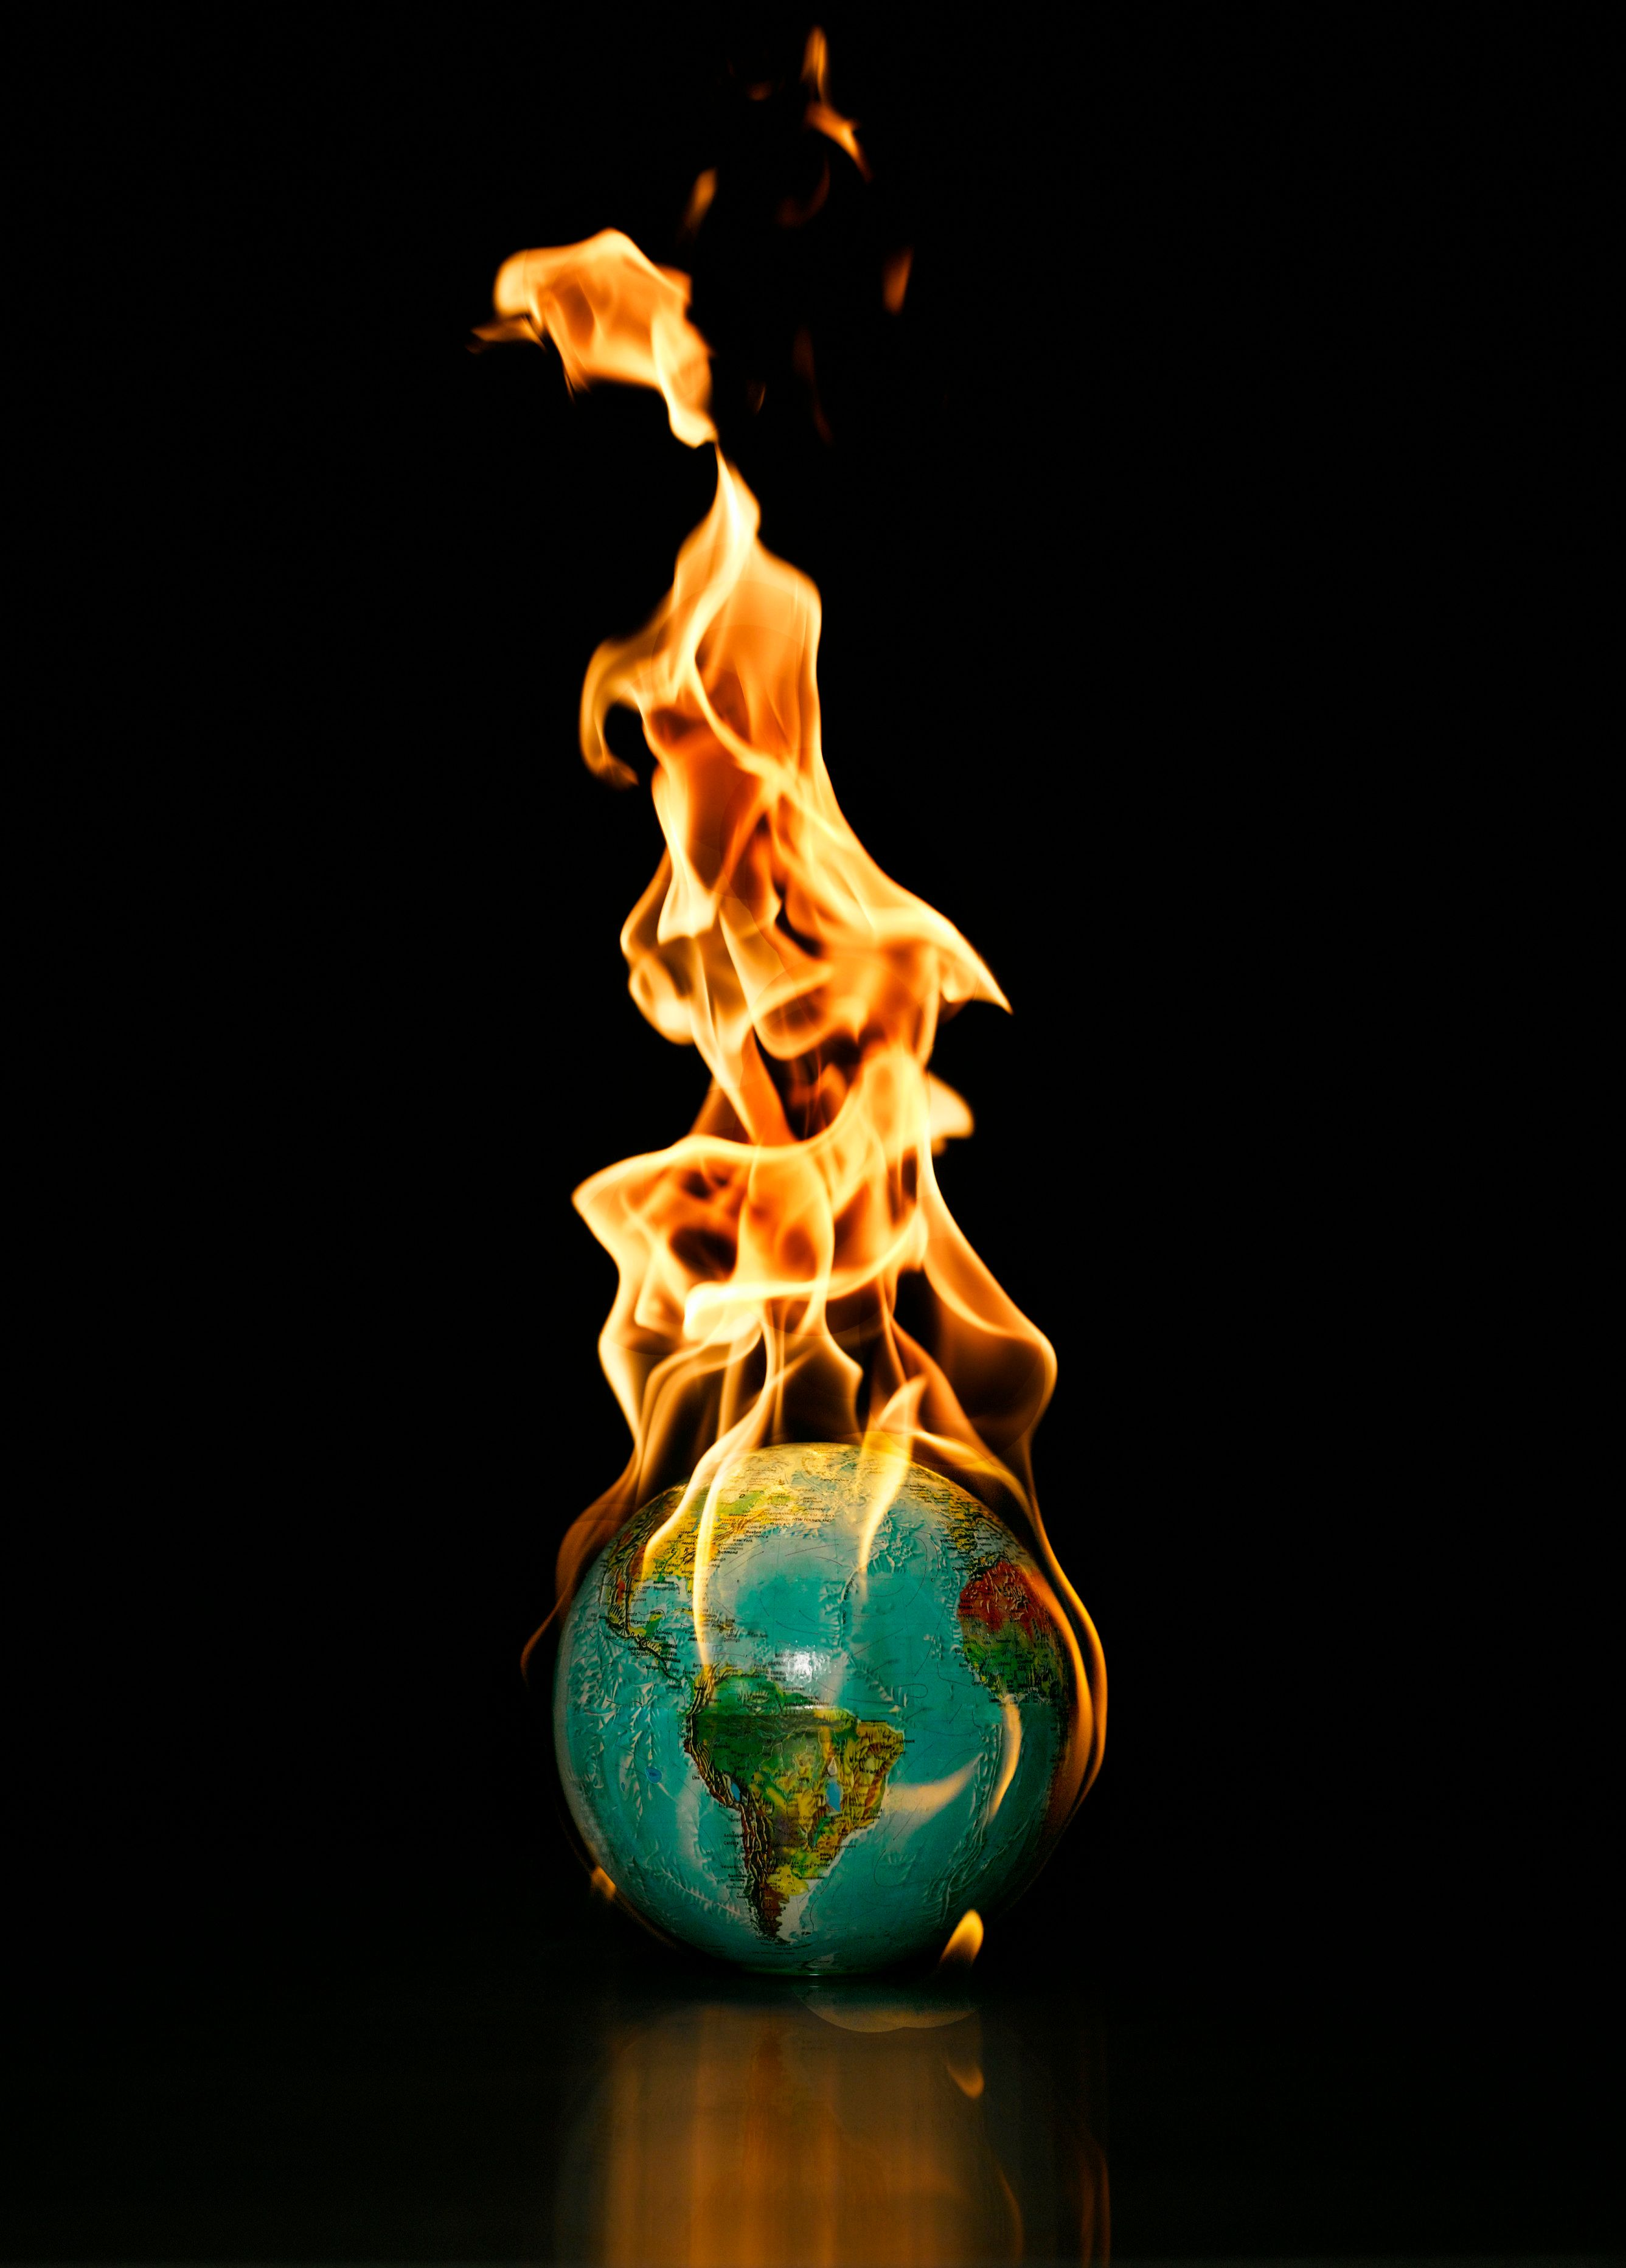 Up until now, psychologyhad been largely left out of theconversation aboutclimate change,...